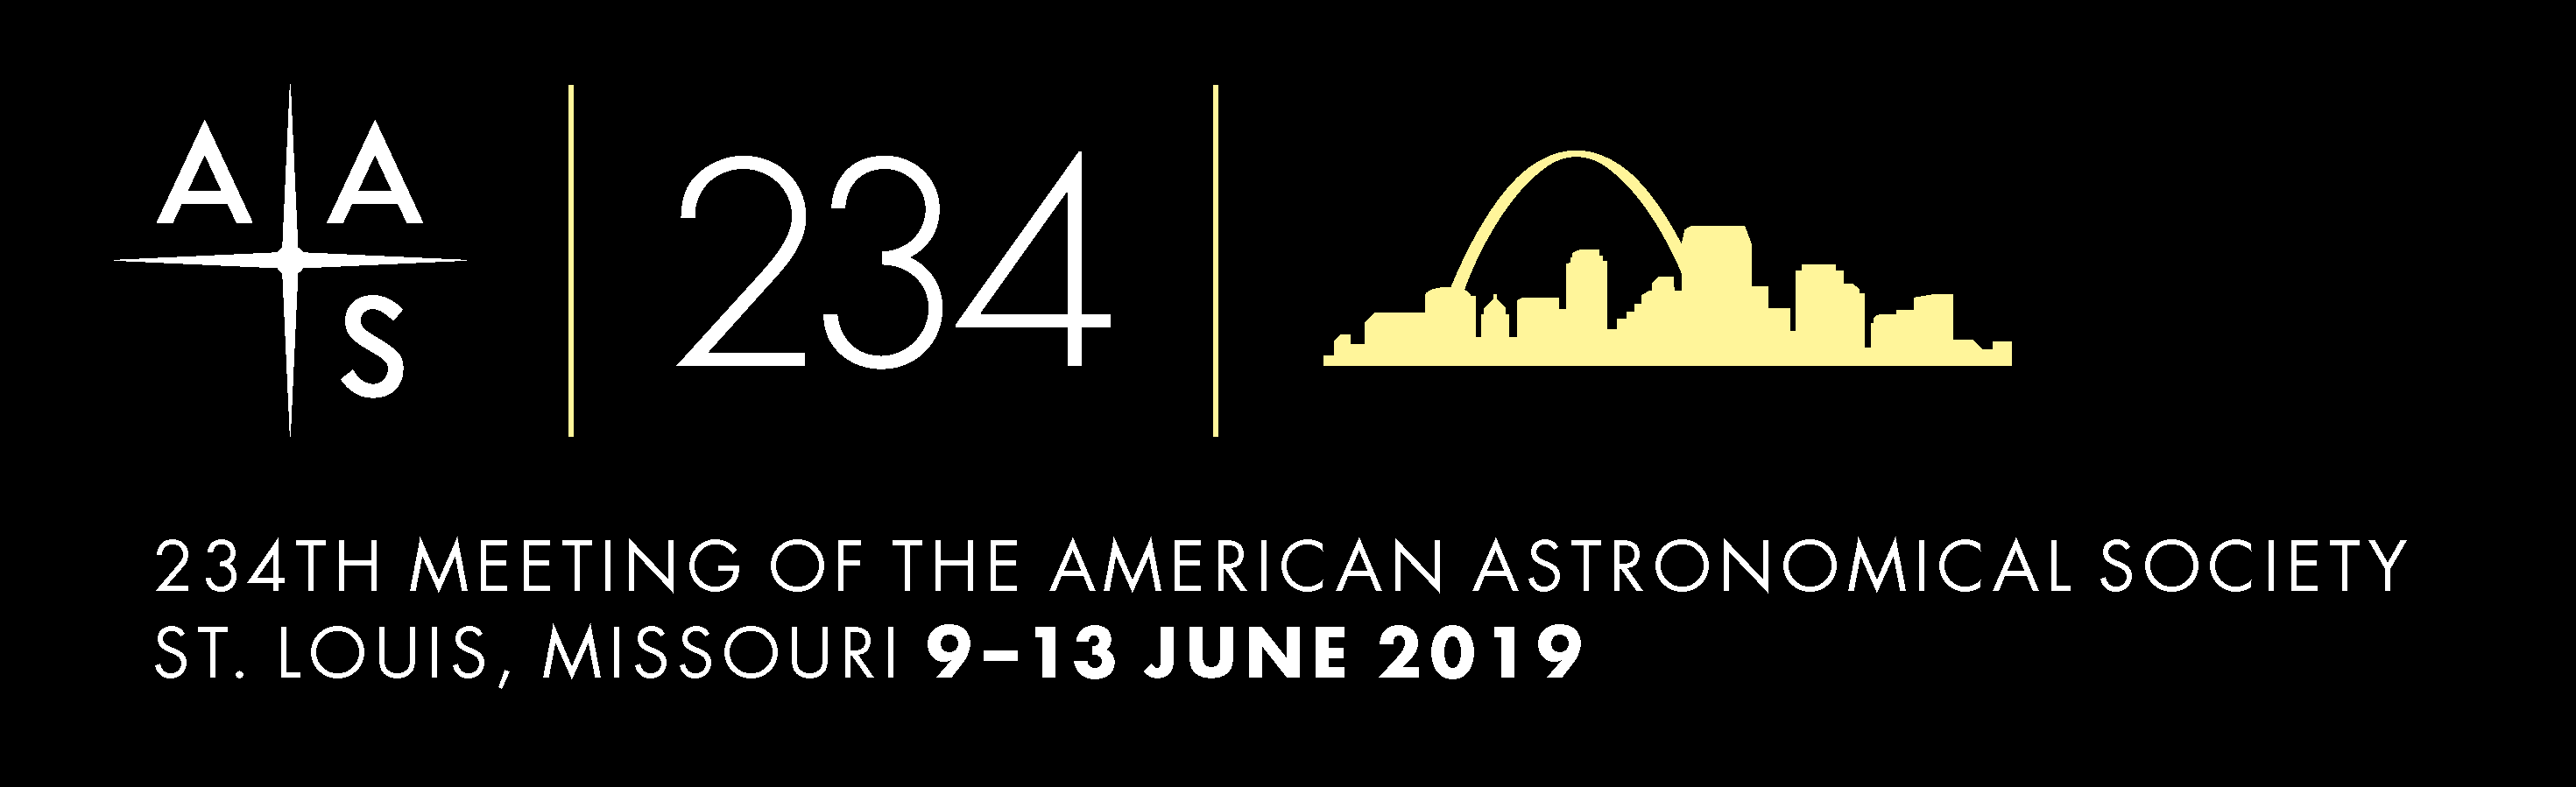 234th AAS Meeting